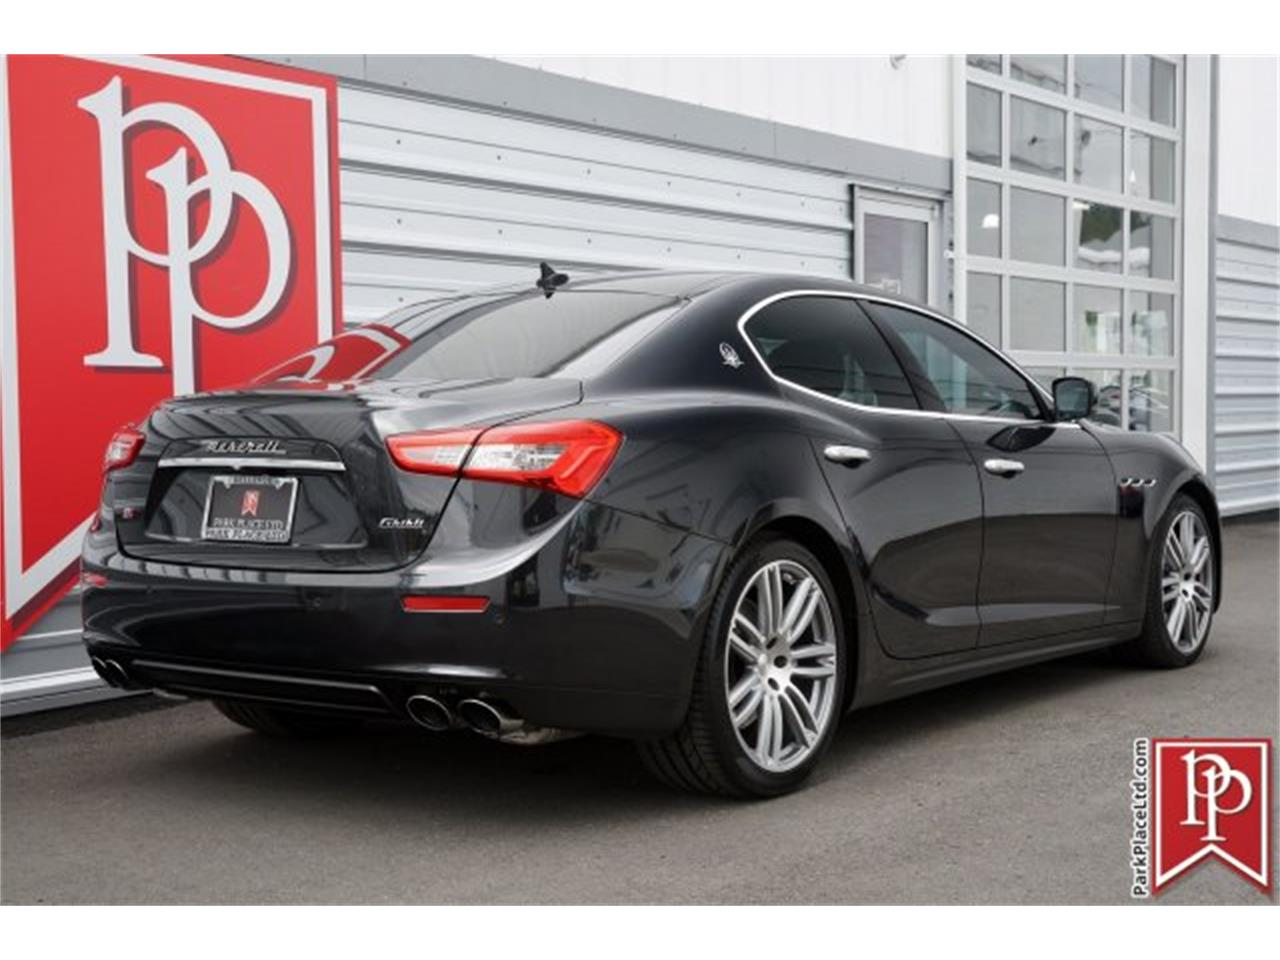 Large Picture of '14 Ghibli located in Bellevue Washington - $44,950.00 Offered by Park Place Ltd - LB5K